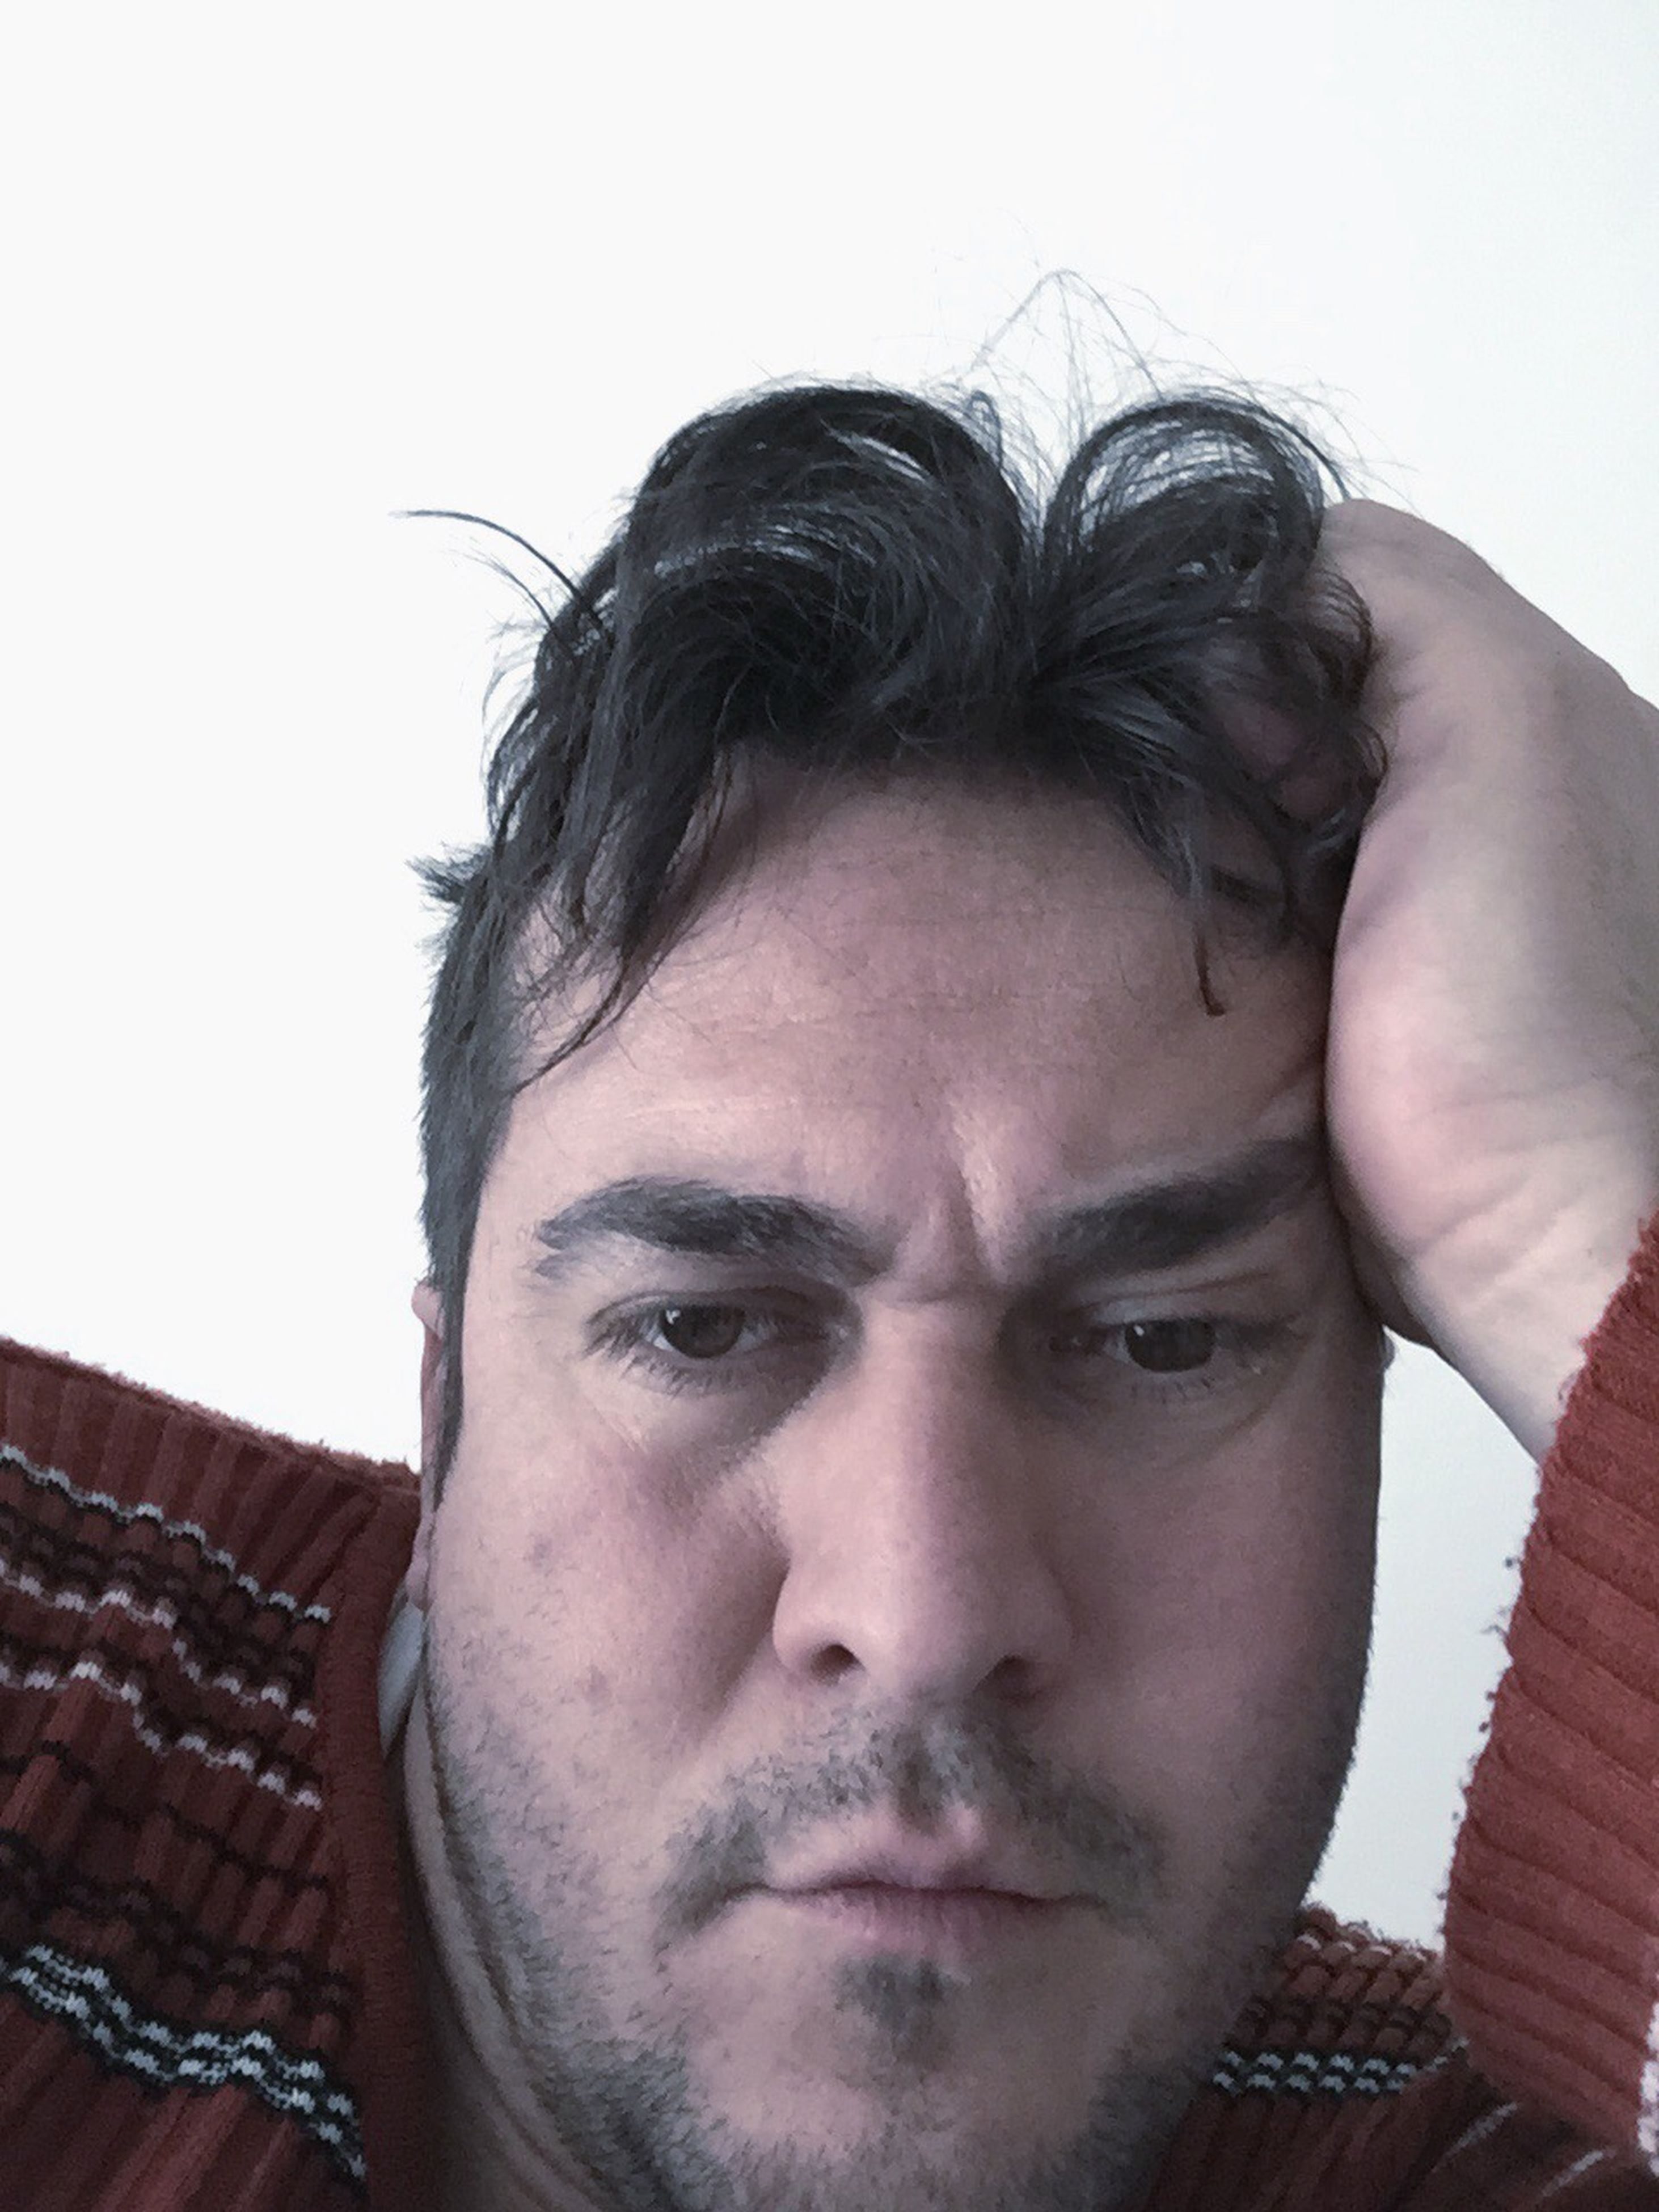 young adult, headshot, person, looking at camera, lifestyles, portrait, young men, front view, close-up, leisure activity, indoors, mid adult, beard, head and shoulders, human face, mid adult men, contemplation